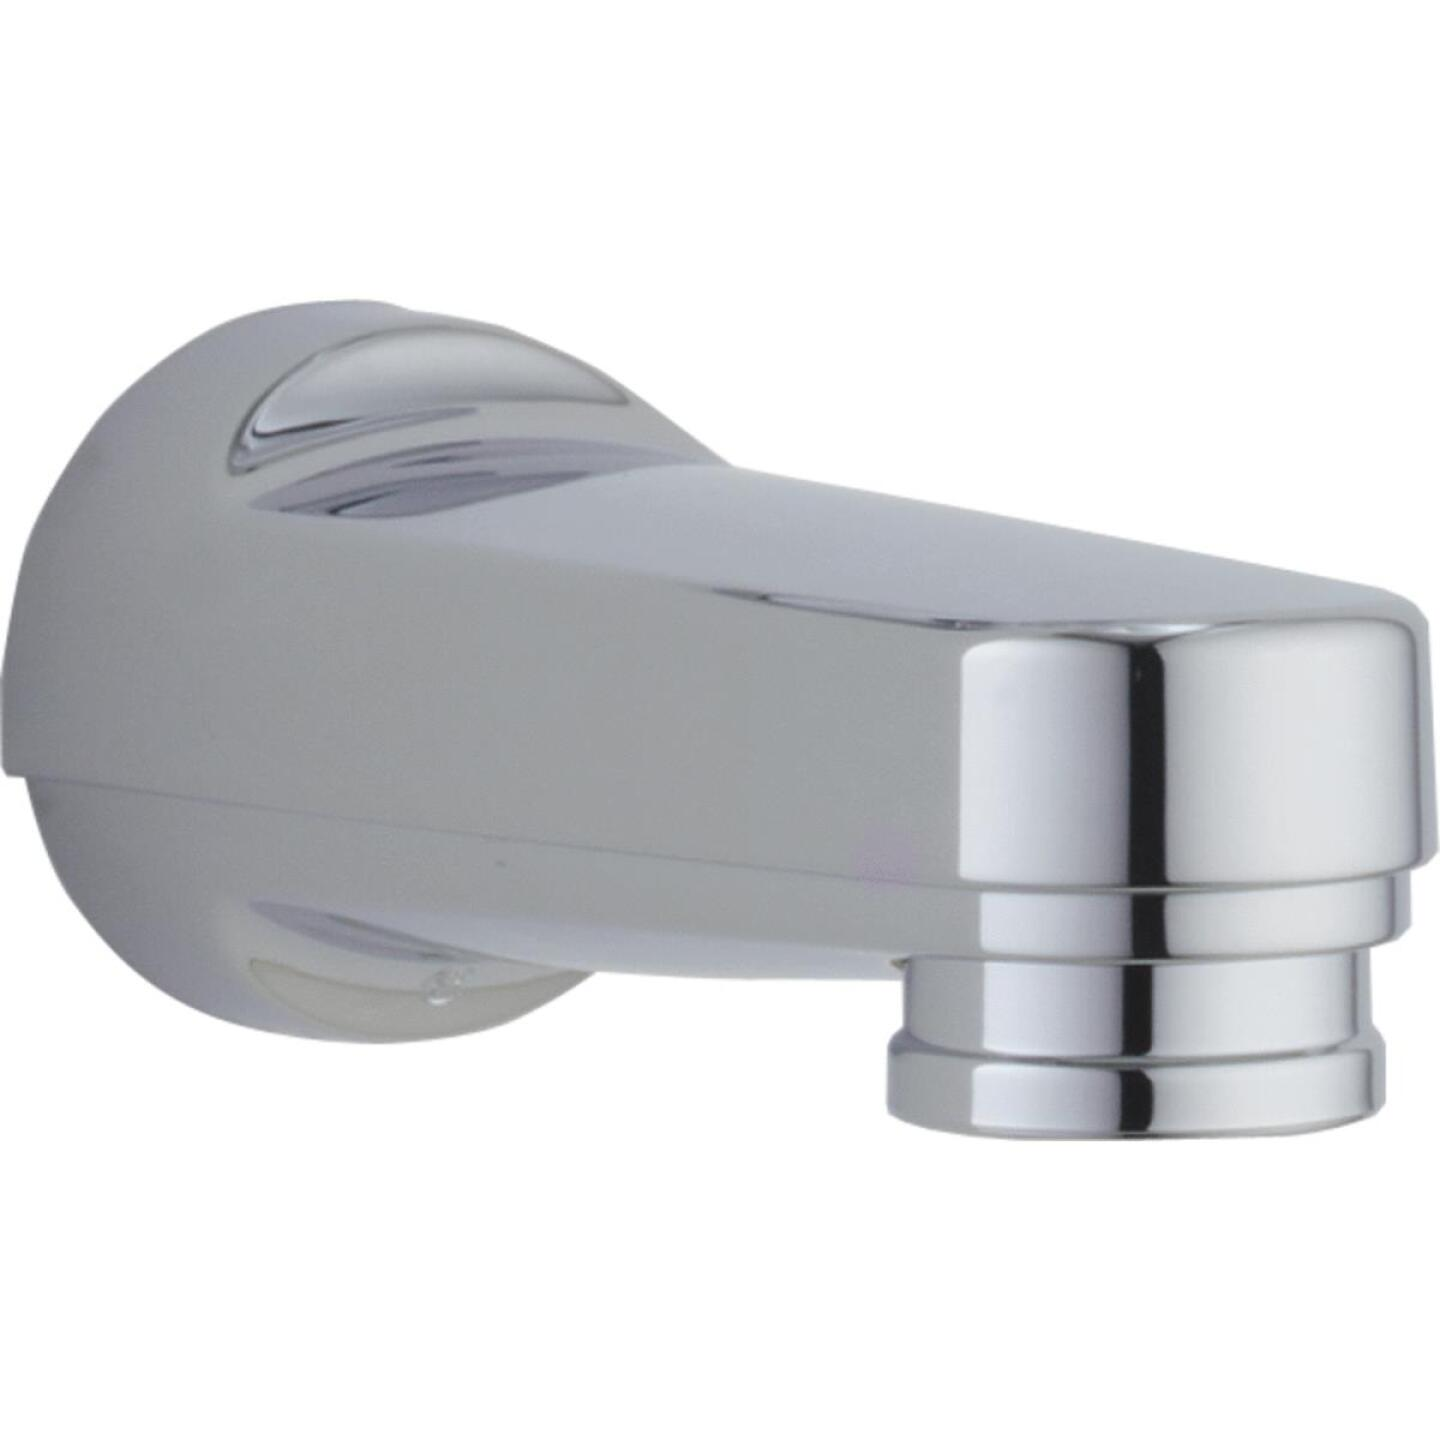 Delta 6-1/8 In. Chrome Bathtub Spout with Diverter Image 1